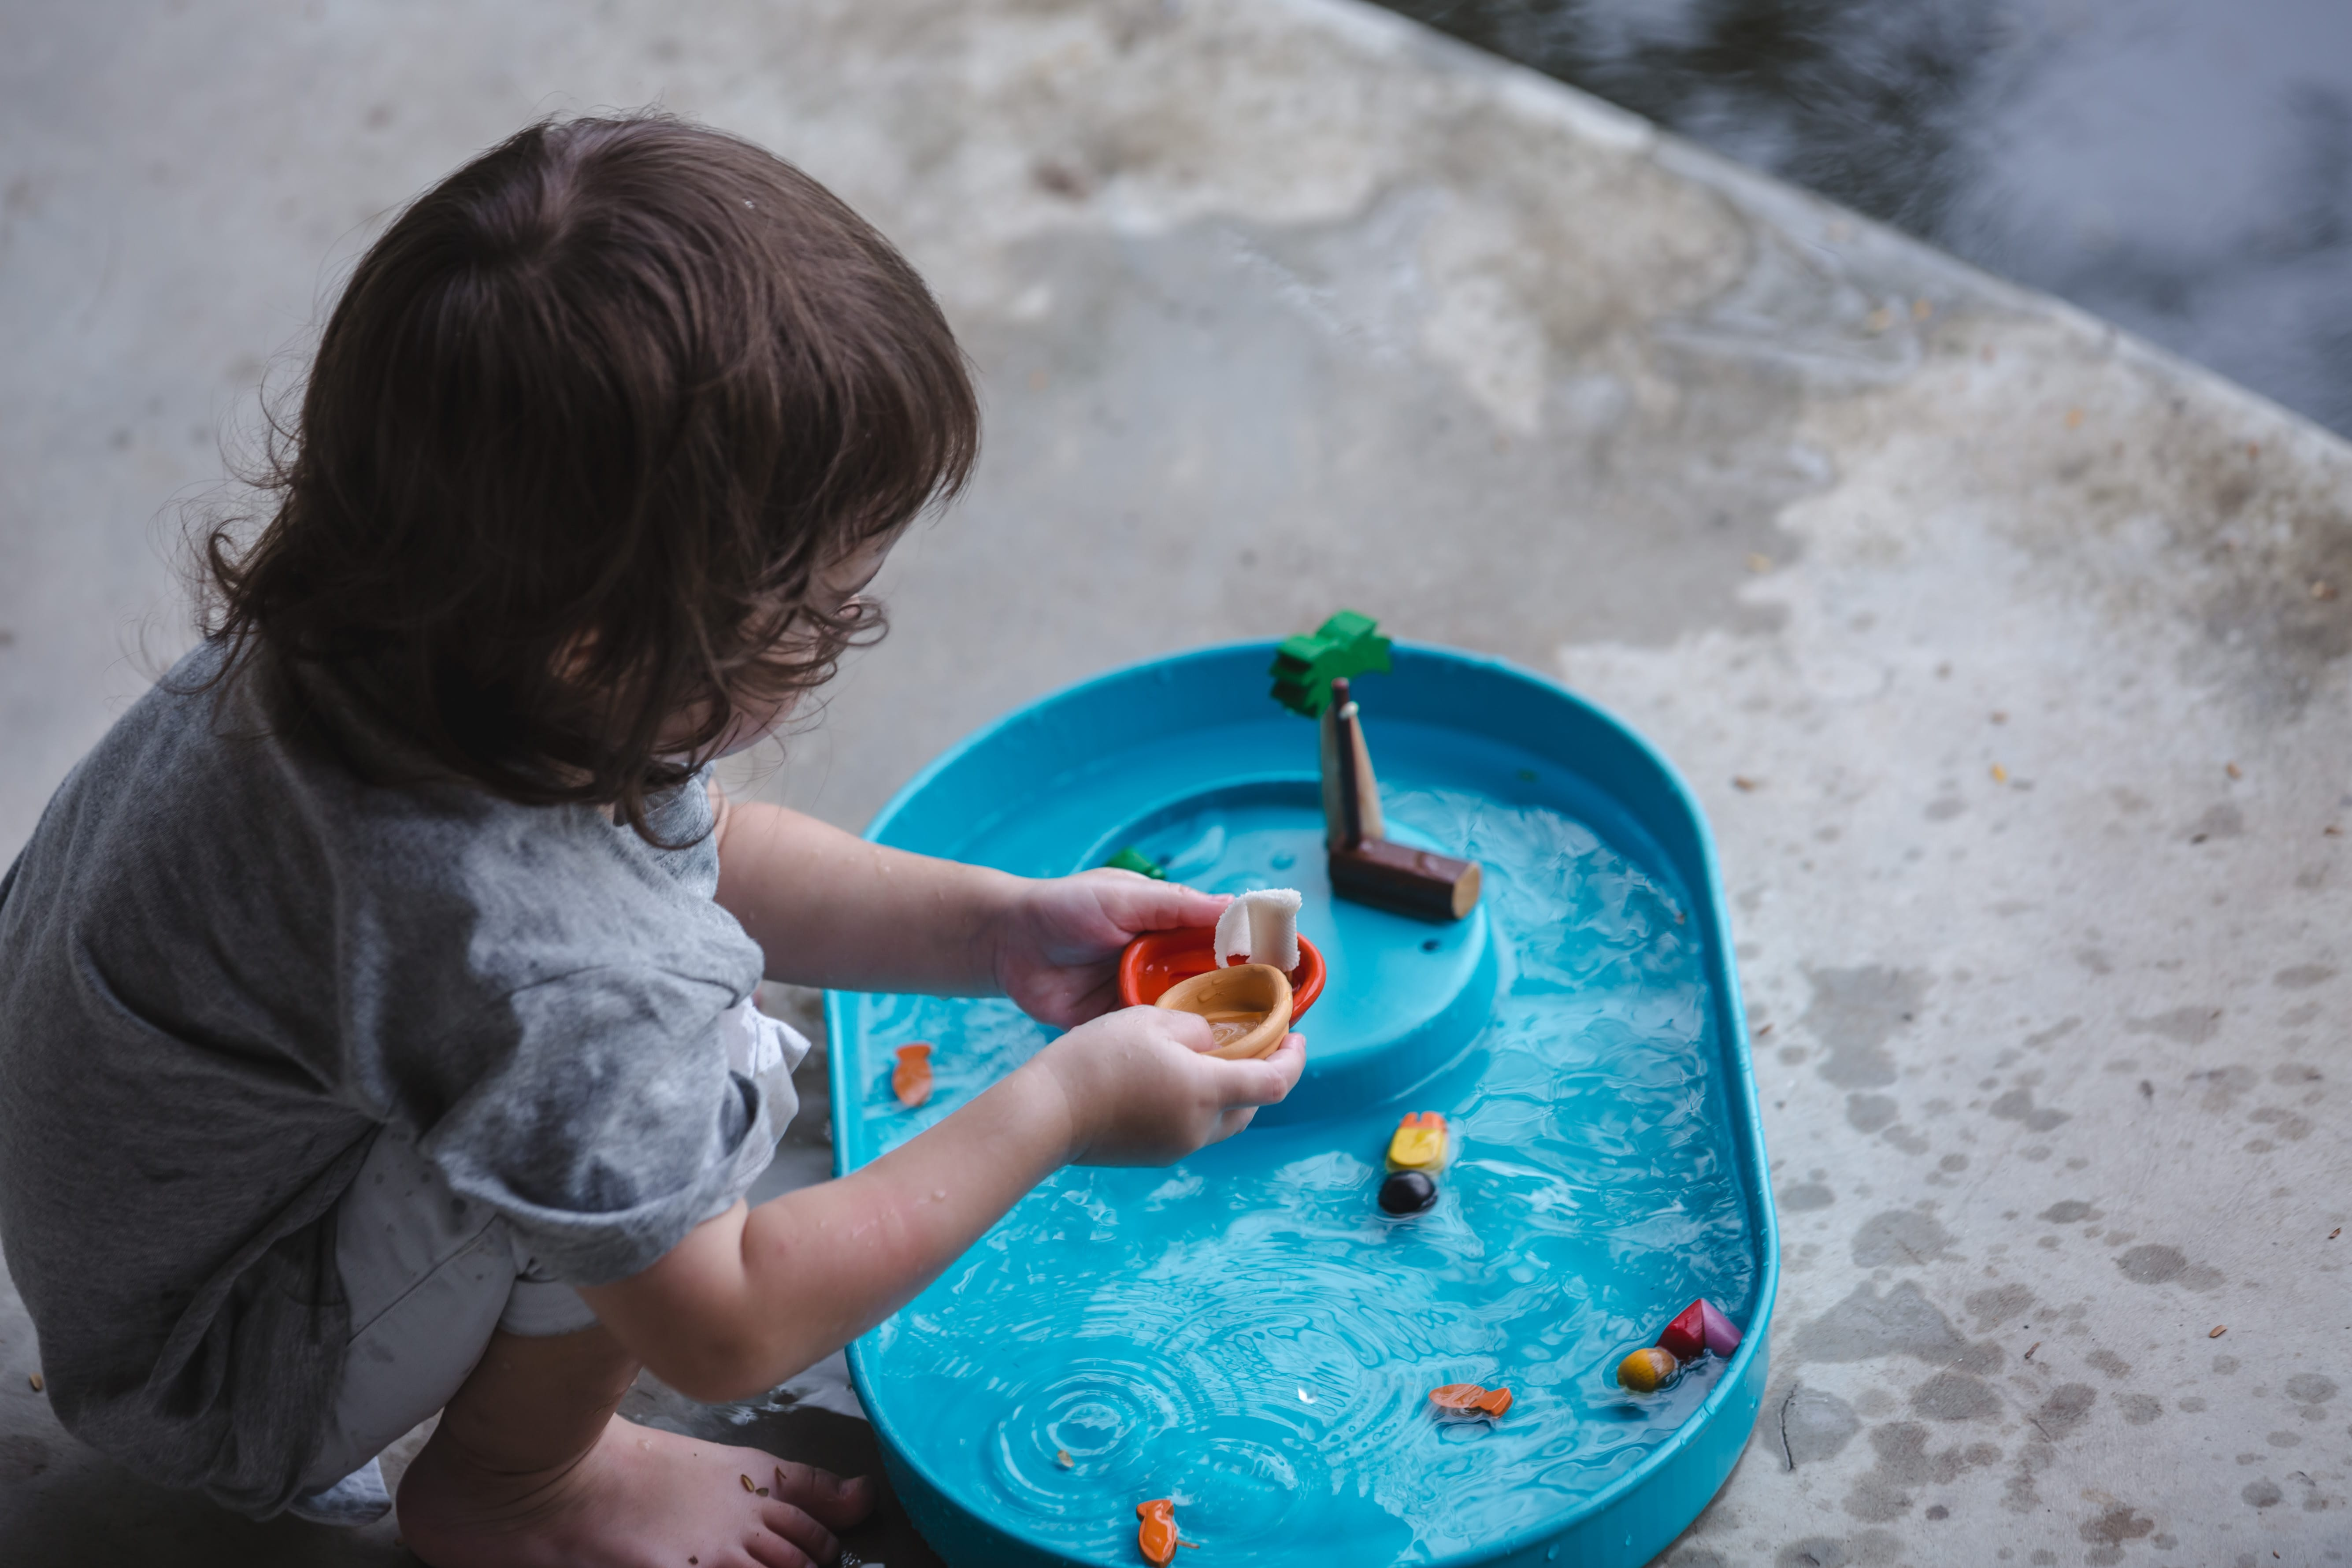 5801_PlanToys_WATER_PLAY_SET_Water_Play_Coordination_Creative_Explore_Fine_Motor_Imagination_3yrs_Wooden_toys_Education_toys_Safety_Toys_Non-toxic_5.jpg